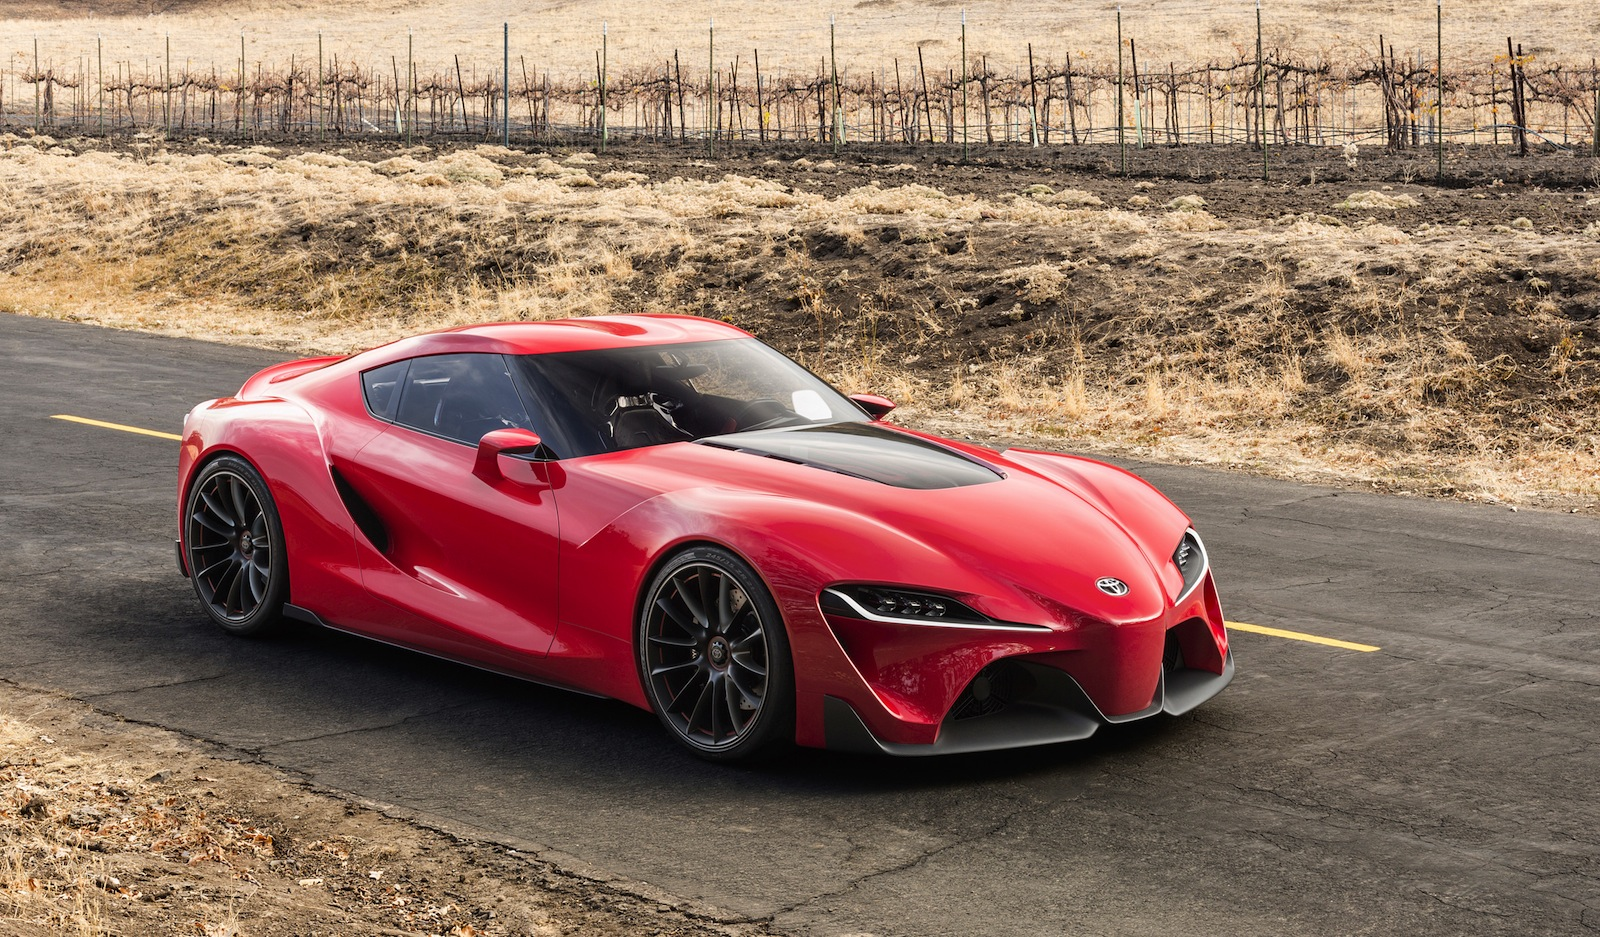 2018 toyota ft1. delighful ft1 2018 toyota supra spied testing at last ft1 concept closing in on  production in toyota ft1 2